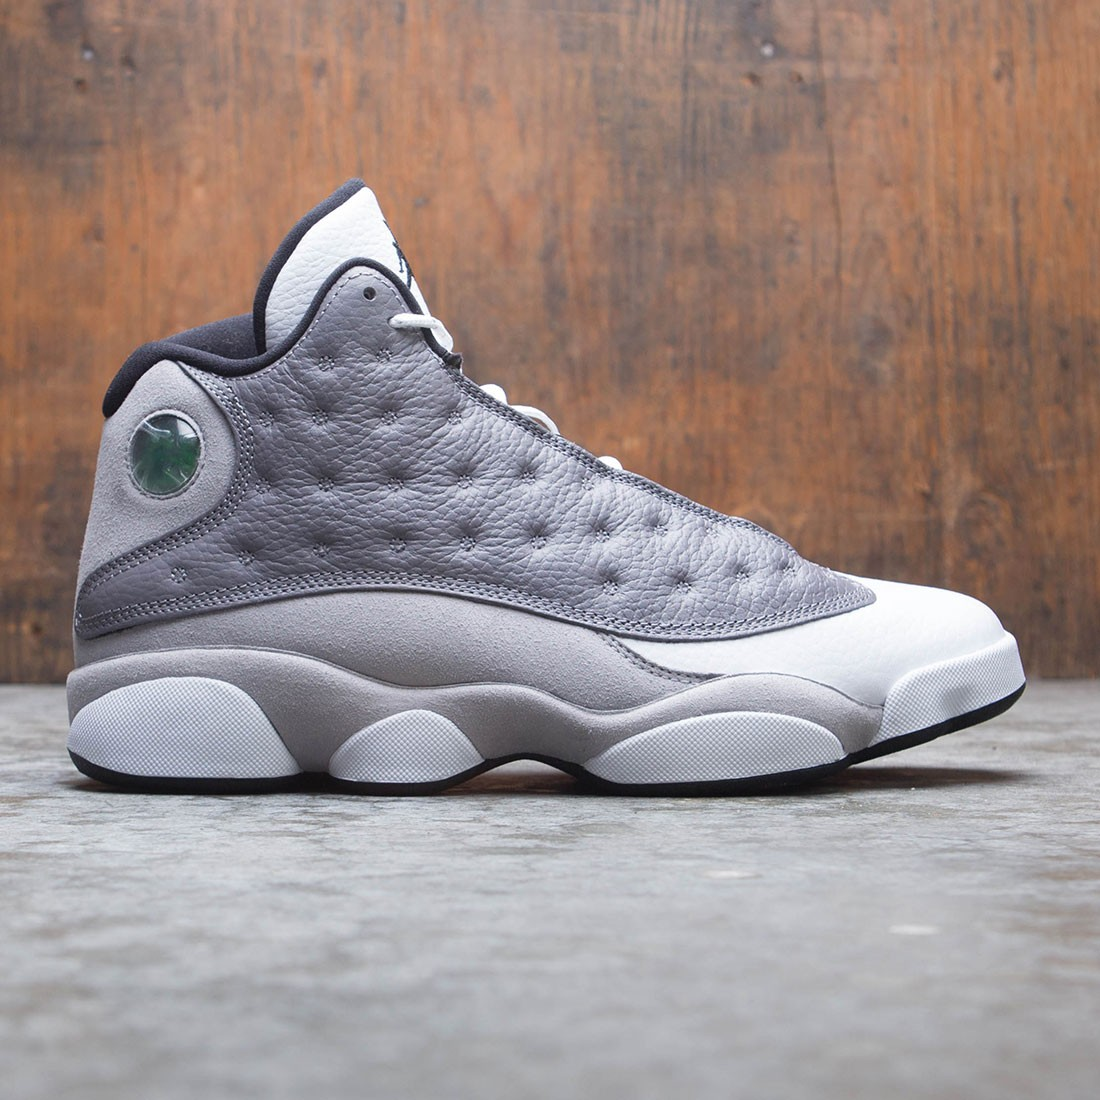 1dd89e9a7be6 jordan men air jordan 13 retro atmosphere grey black white